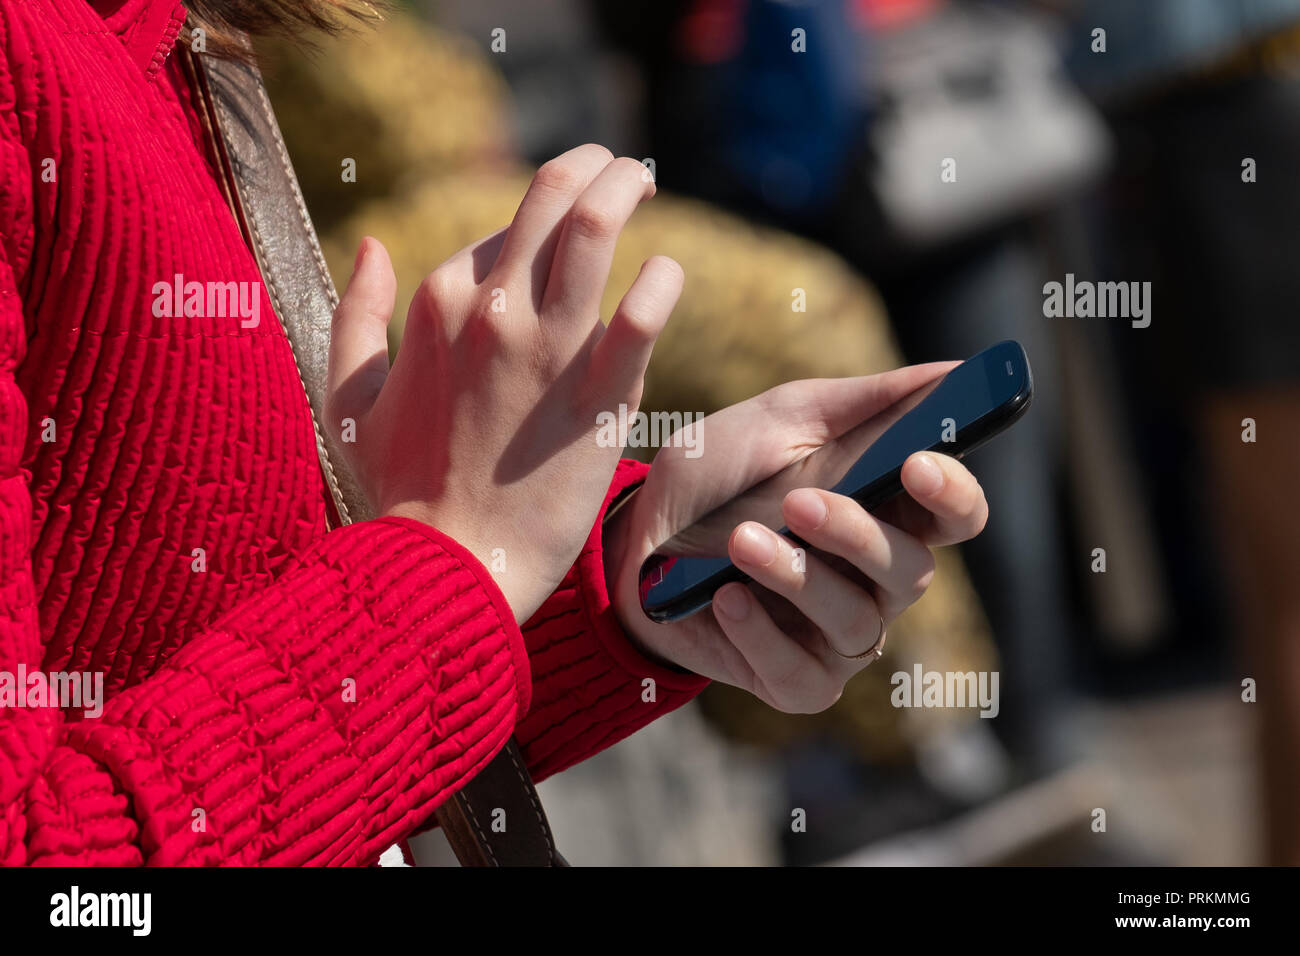 The cut-off girl's photo fingers dialing number on phone. - Stock Image